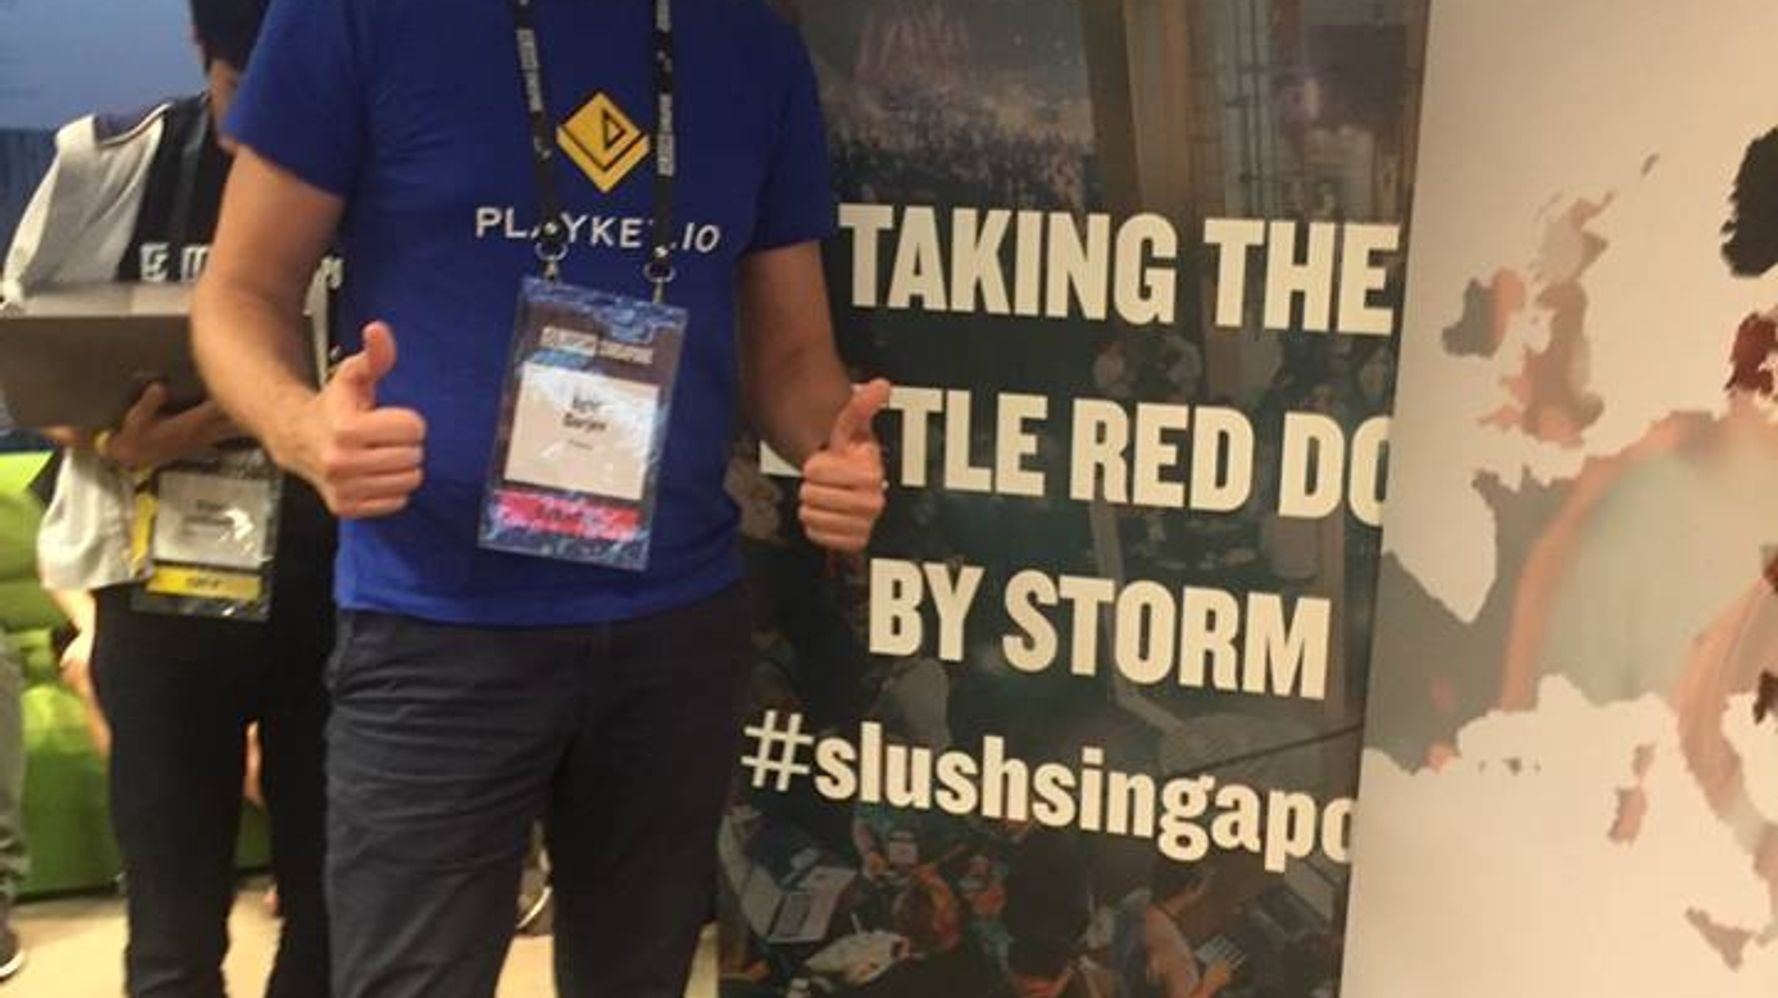 Playkey, A Blockchain-Powered P2P Decentralized Cloud Gaming